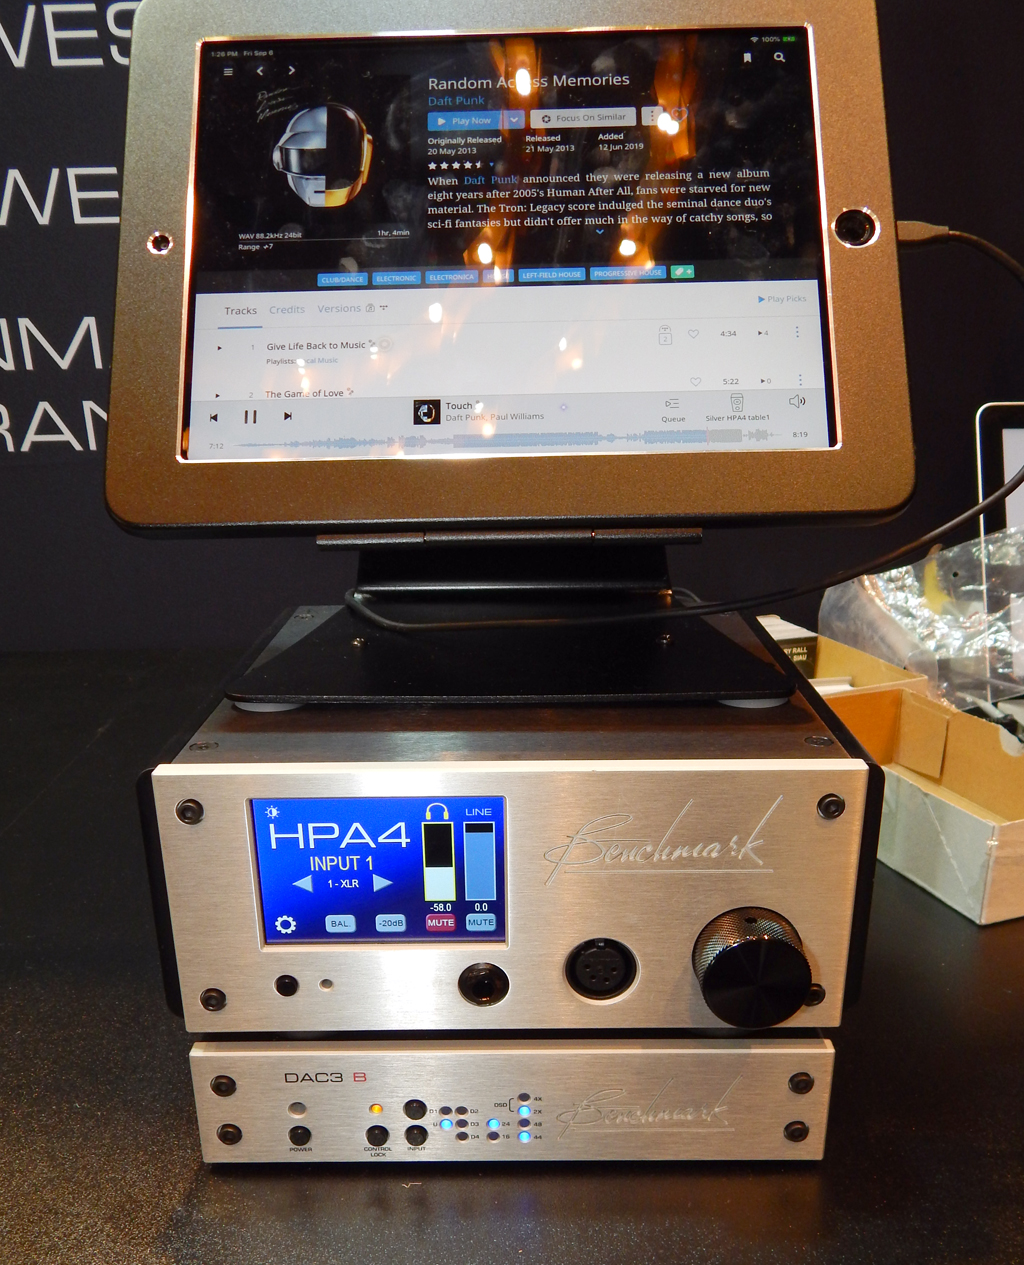 Benchmark HPA4 Headphone/Line Amplifier, Benchmark DAC3 B Reference Quality DAC